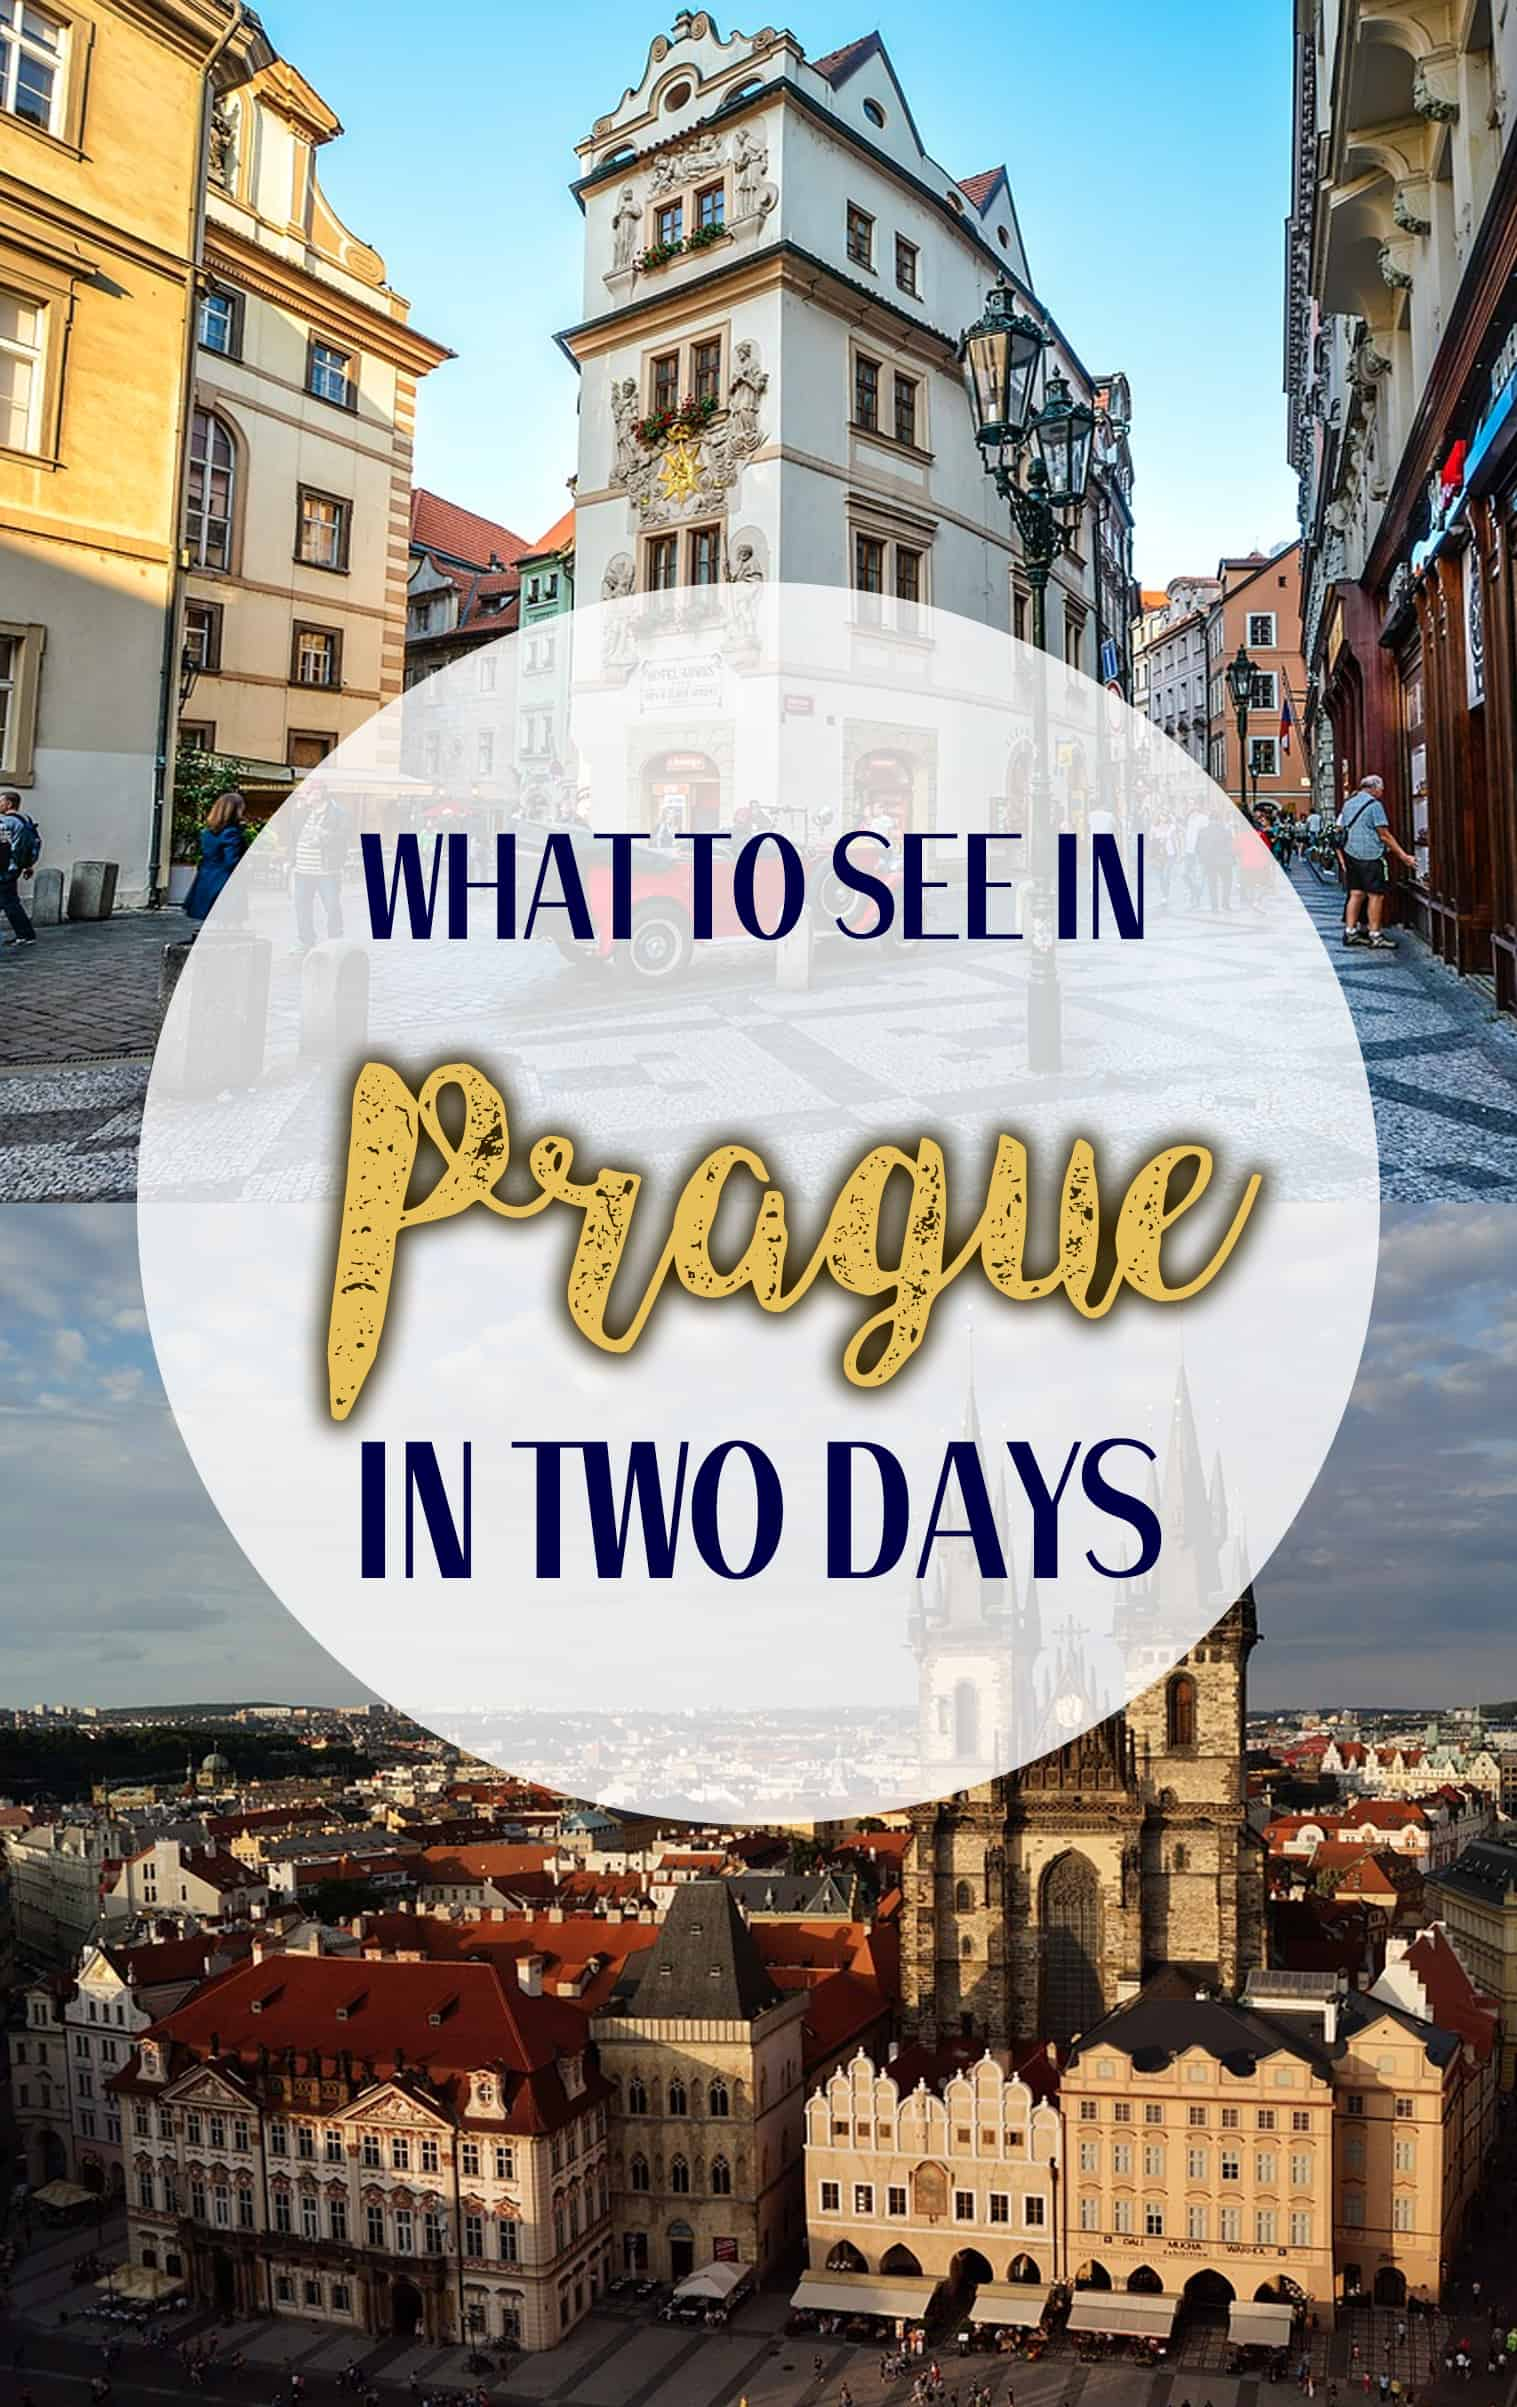 Prague is known as the Bohemian capital of the Czech Republic with its art-nouveau, quirky art and traditional cuisine. It's no wonder why a weekend… What to see in Prague in 48 hours